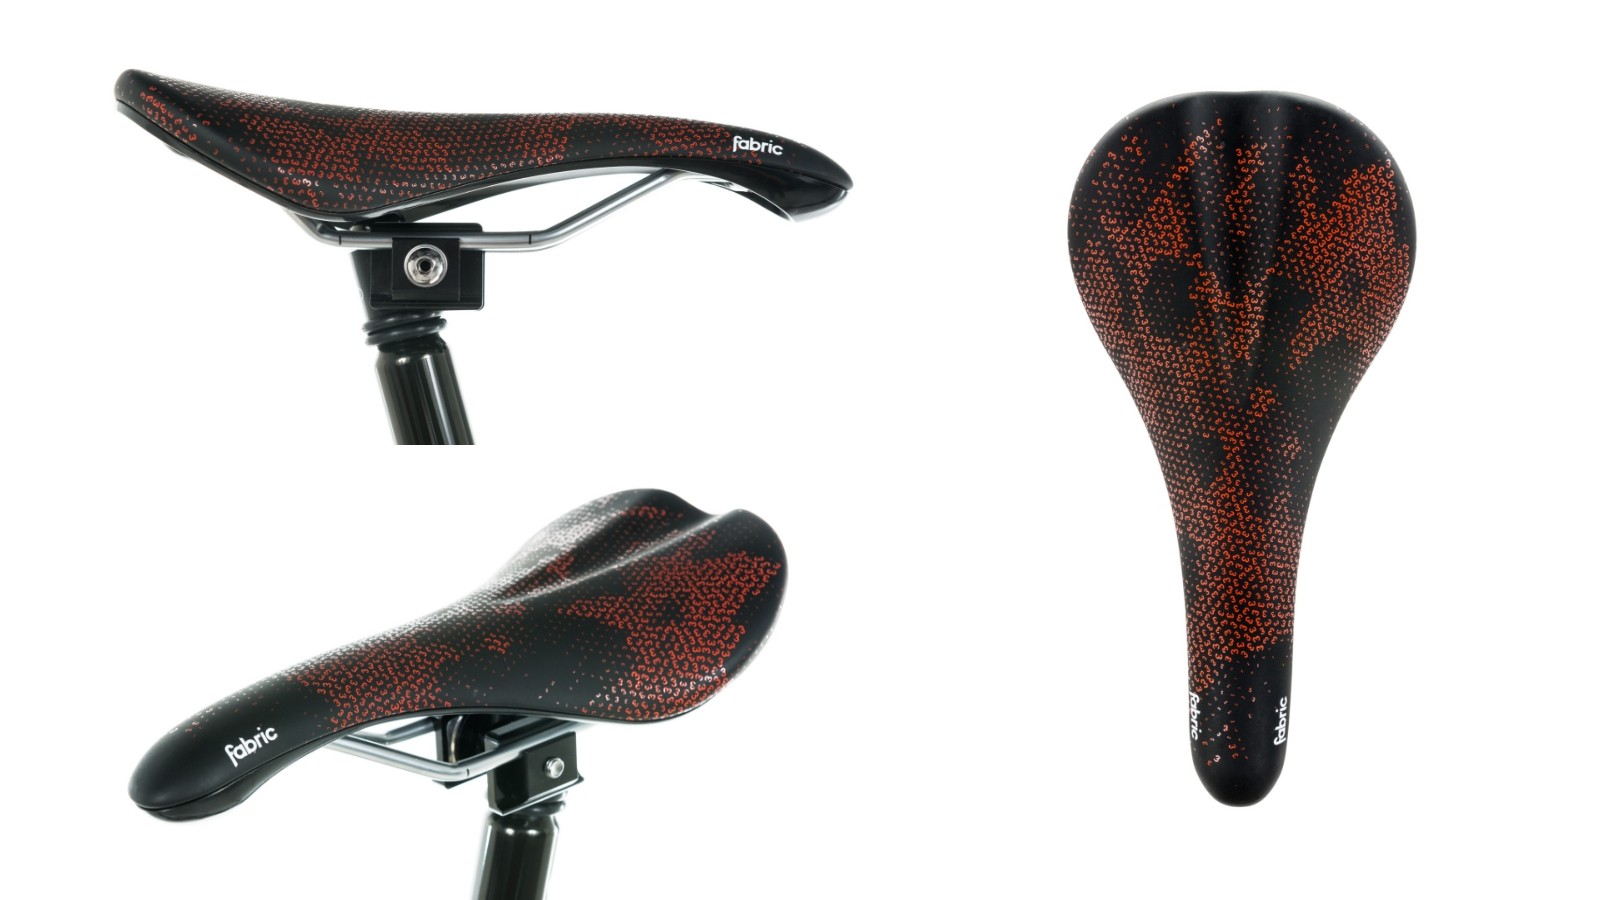 The Fabric Scoop saddle features a Devesa print pattern, paying homage to Girona, the hometown of CHPT3